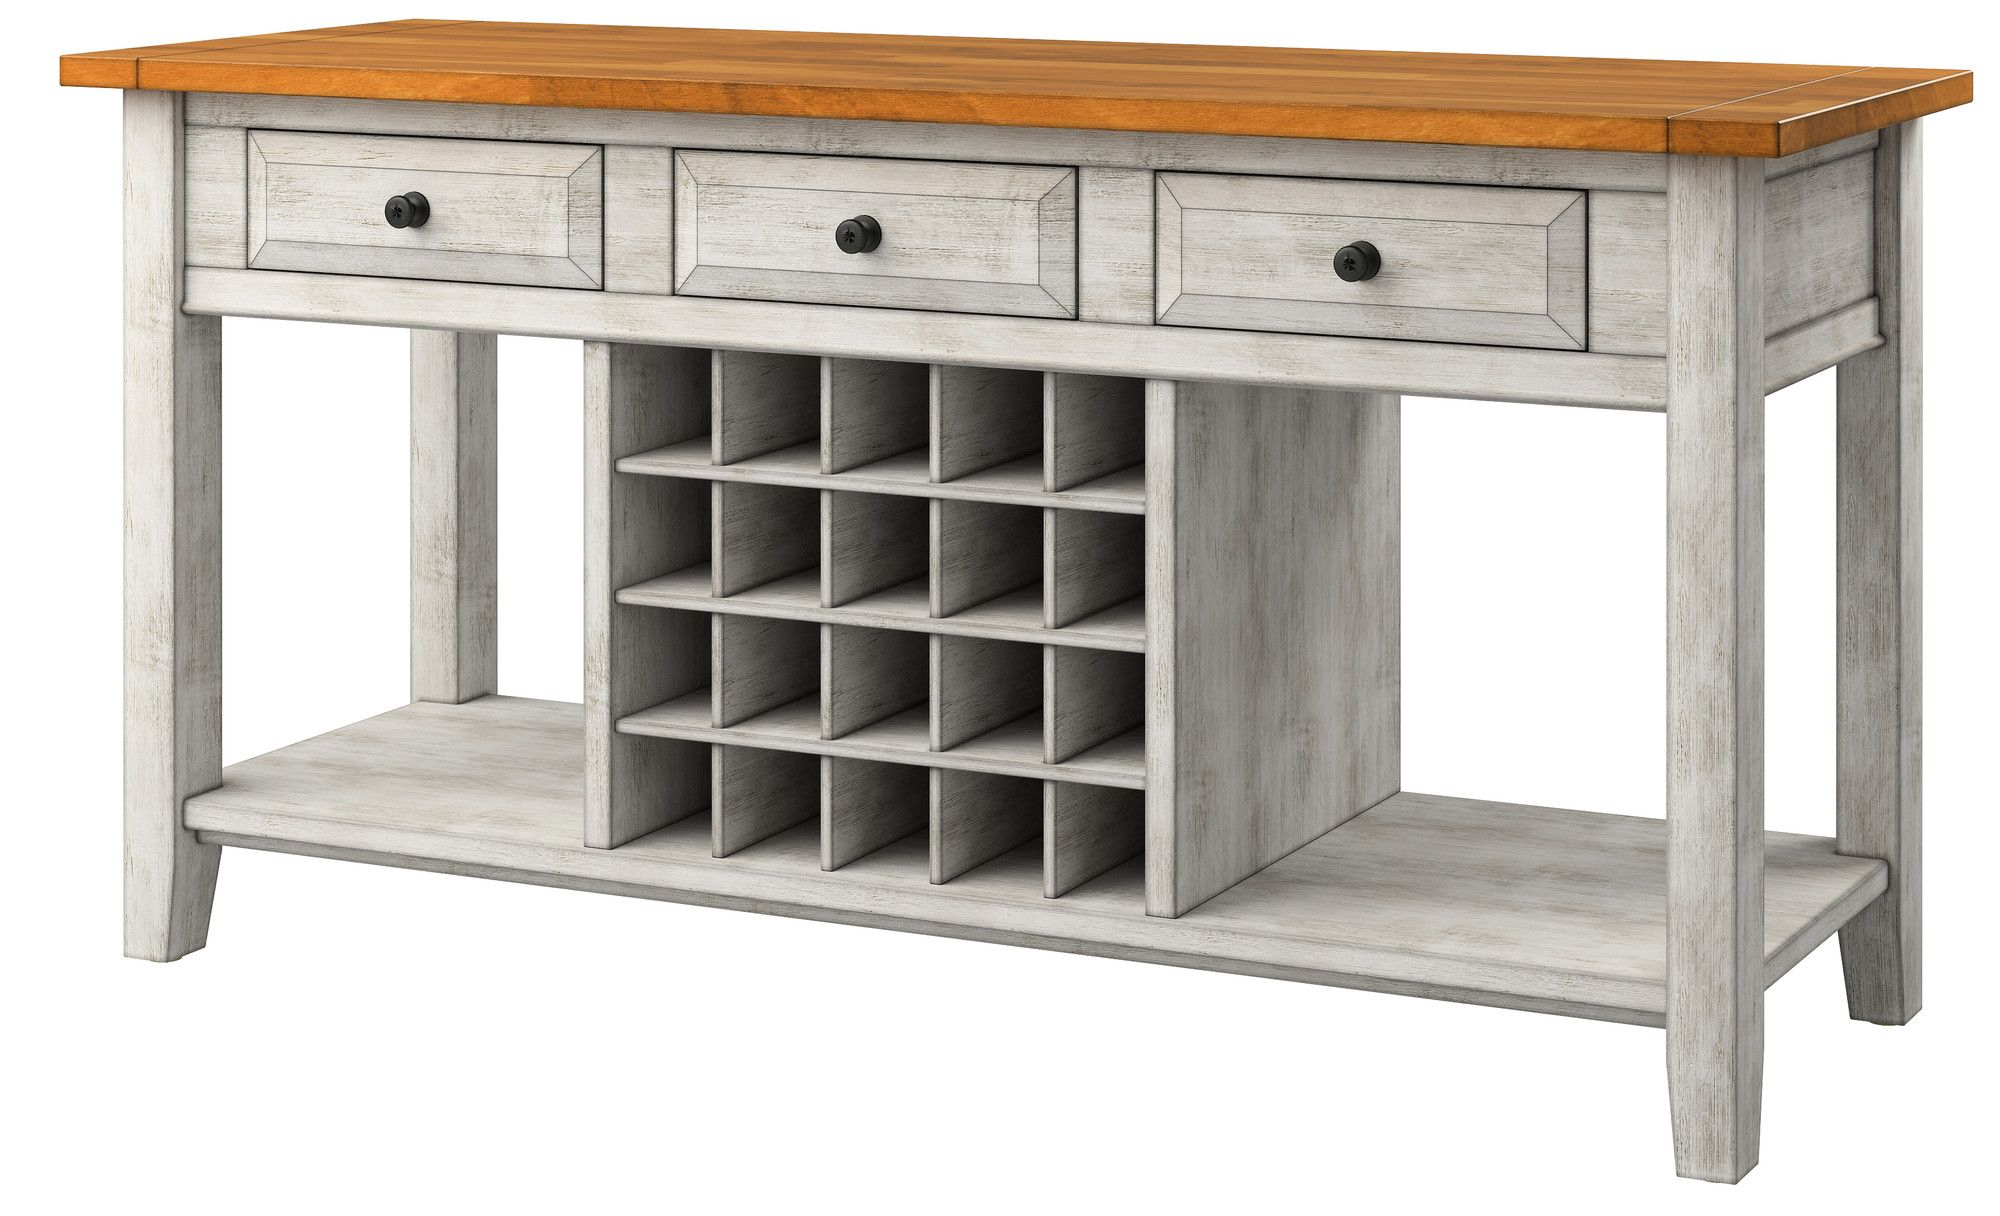 Fortville Sideboard | Products | Kitchen Buffet, Buffet Pertaining To Latest Fortville Sideboards (View 7 of 20)